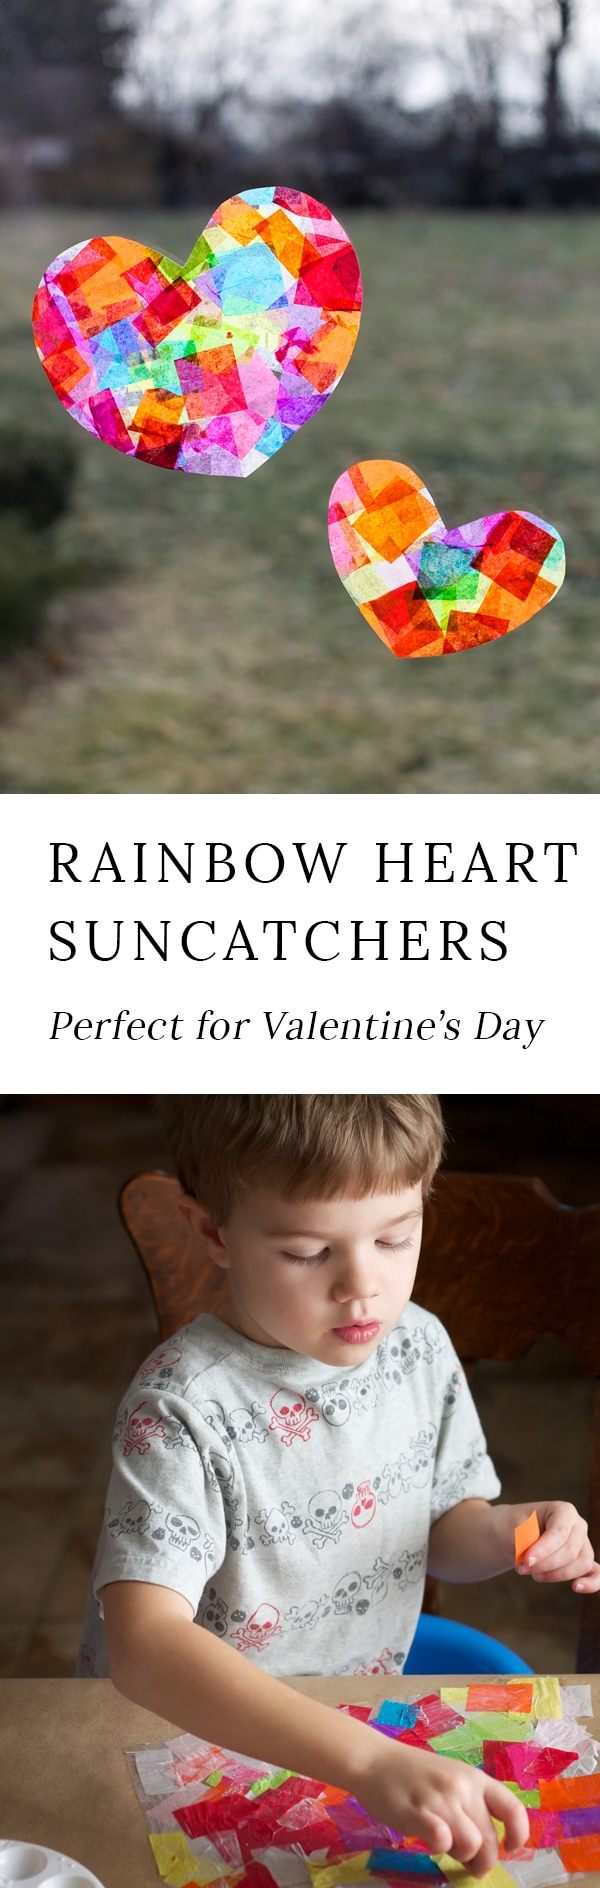 Crafters of all ages will enjoy learning how to make gorgeous Rainbow Heart Suncatchers with tissue paper and glue, perfect for Valentine's Day! #heartsuncatchers #valentinesdaycrafts #rainbowheartsuncatchers #tissuepapercrafts #suncatchercrafts #easycraftsforkids #preschoolcrafts #heartcrafts #rainbowcrafts #heartcraftideas